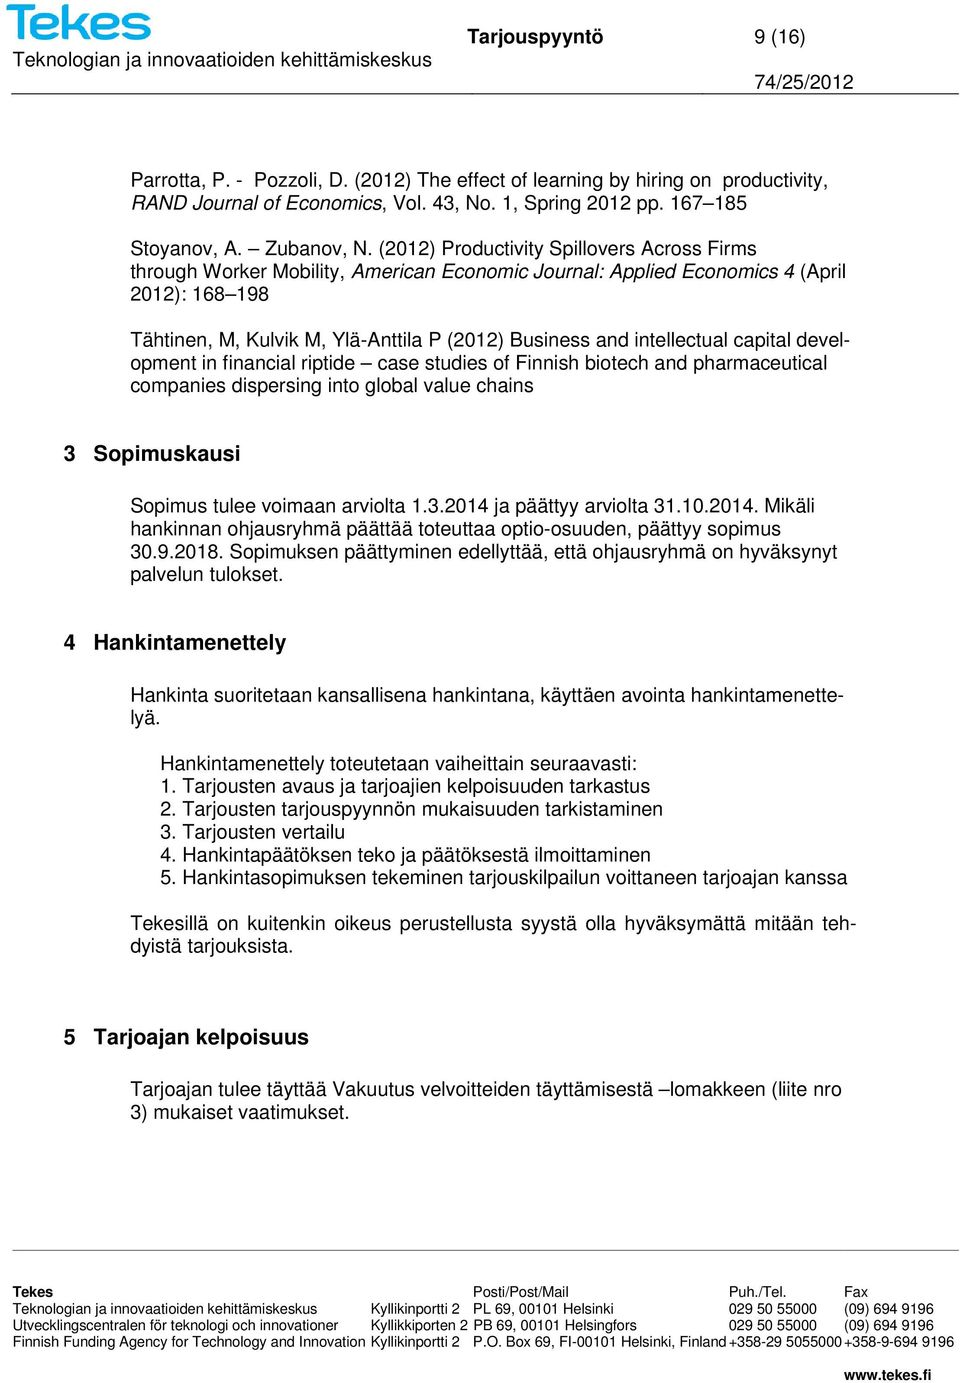 intellectual capital development in financial riptide case studies of Finnish biotech and pharmaceutical companies dispersing into global value chains 3 Sopimuskausi Sopimus tulee voimaan arviolta 1.